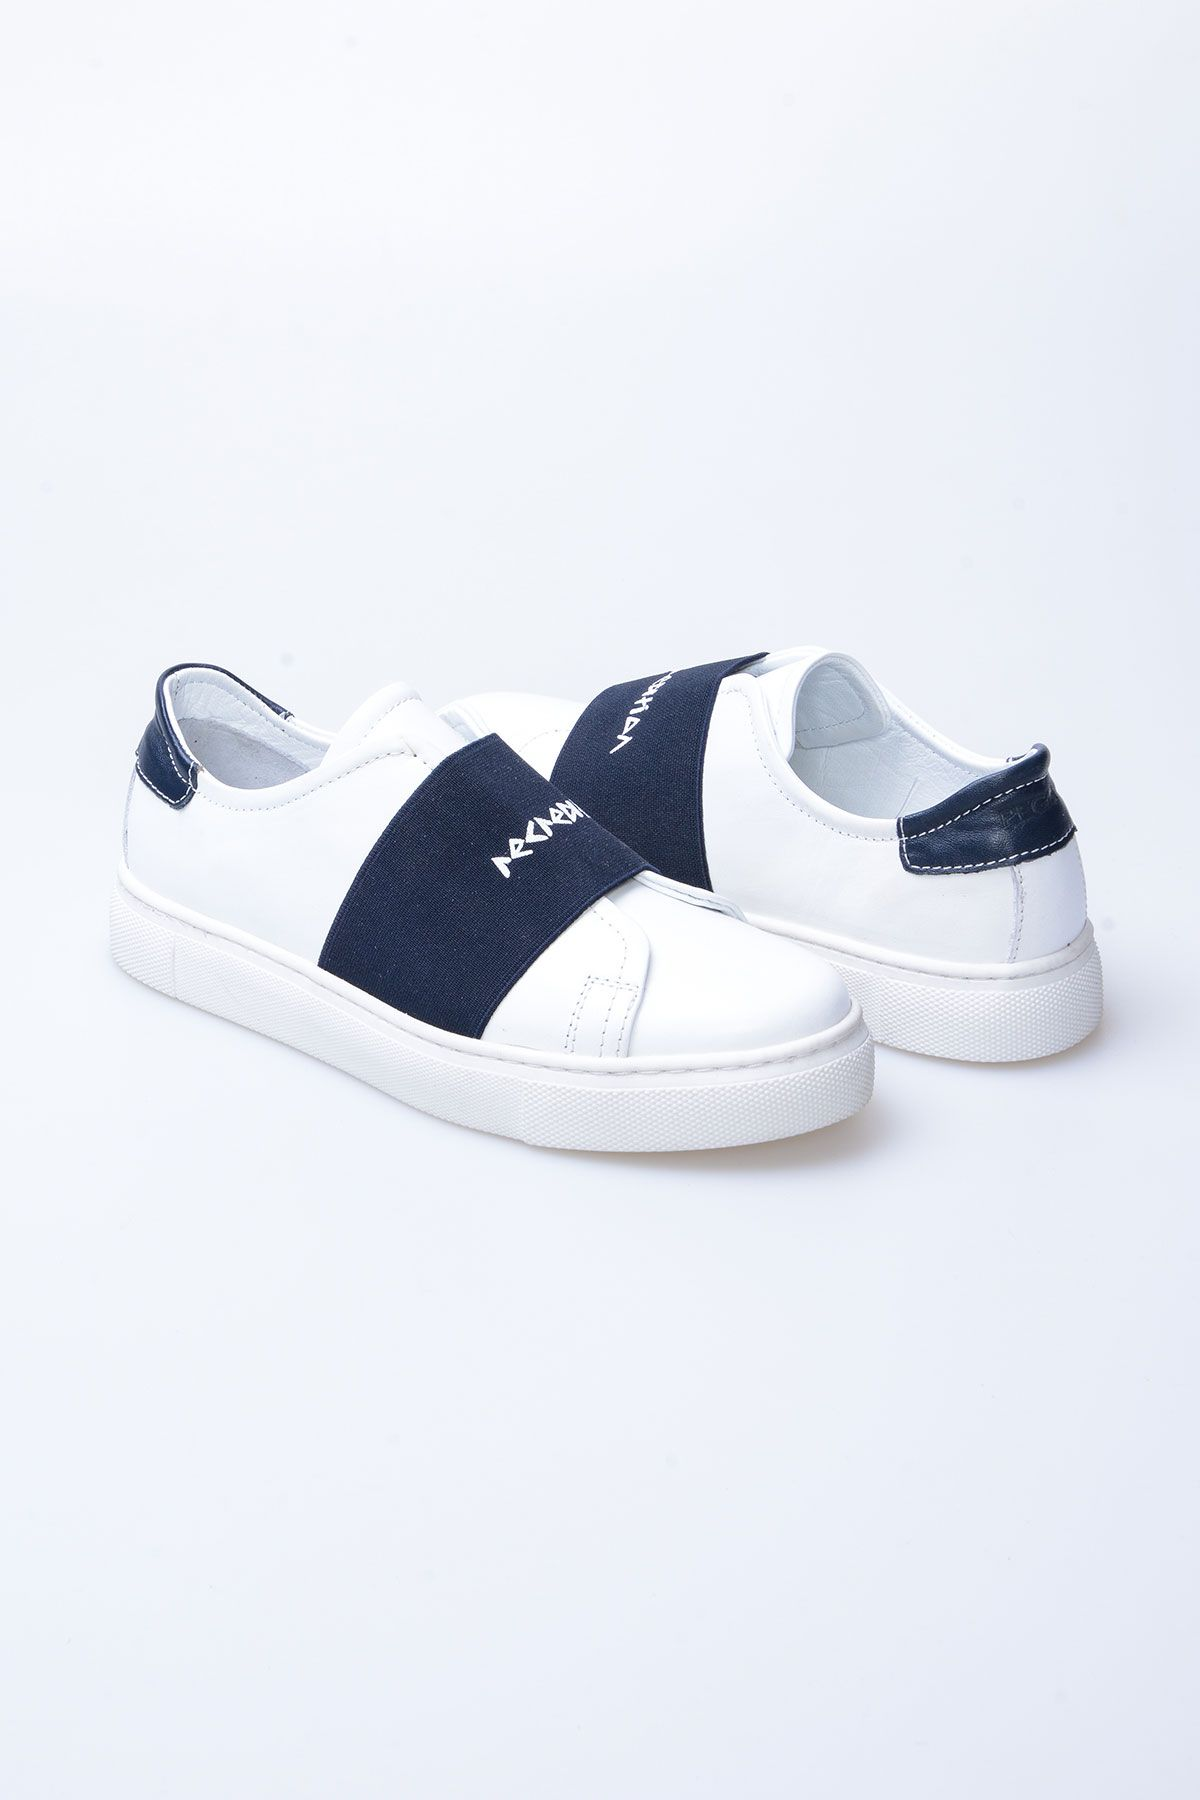 Pegia Recreation Hakiki Deri Bayan Sneaker 19REC101 Lacivert